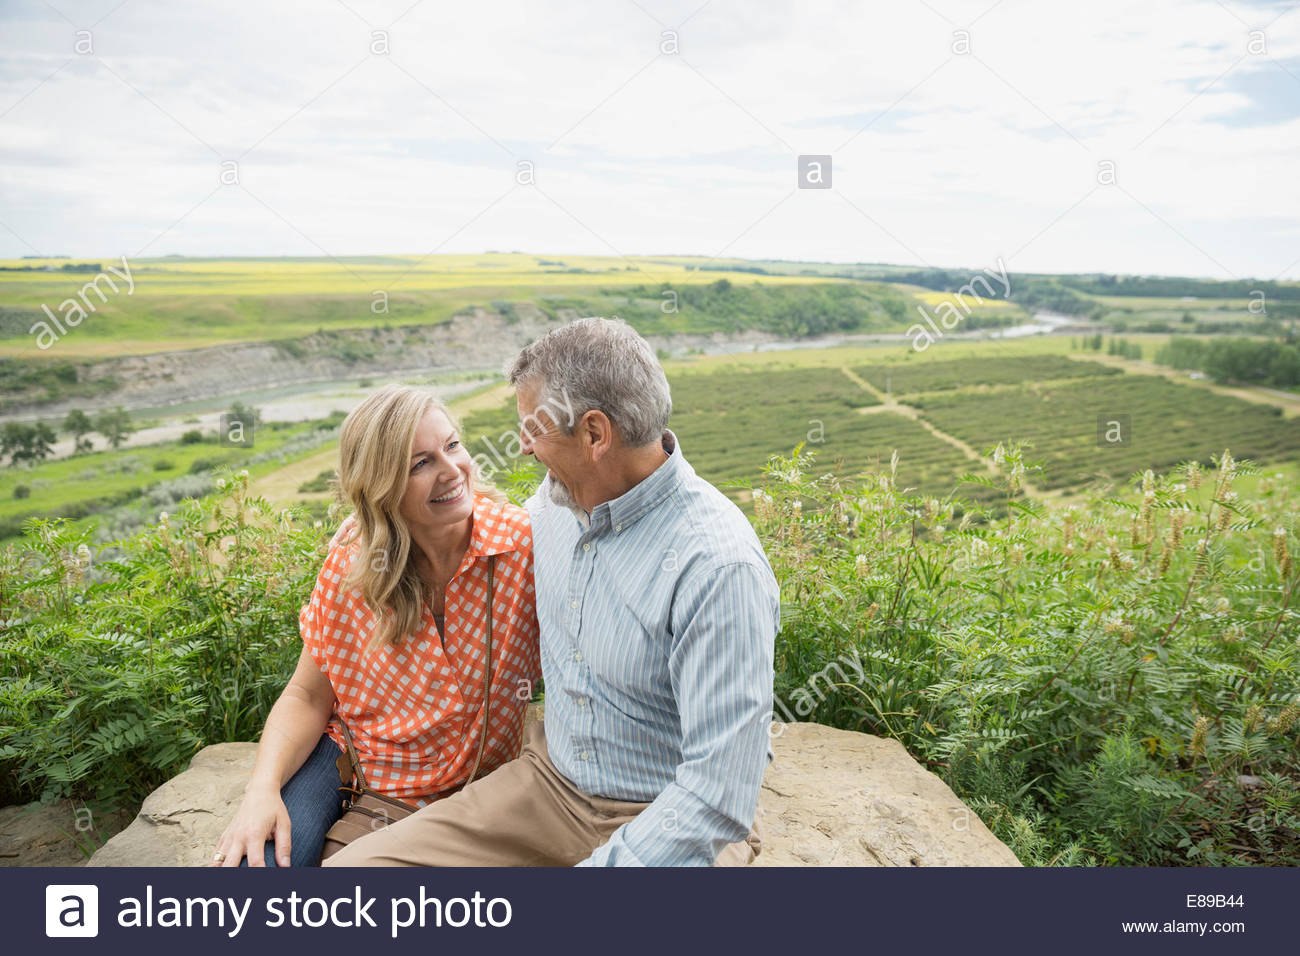 Smiling couple hugging on rock overlooking countryside - Stock Image